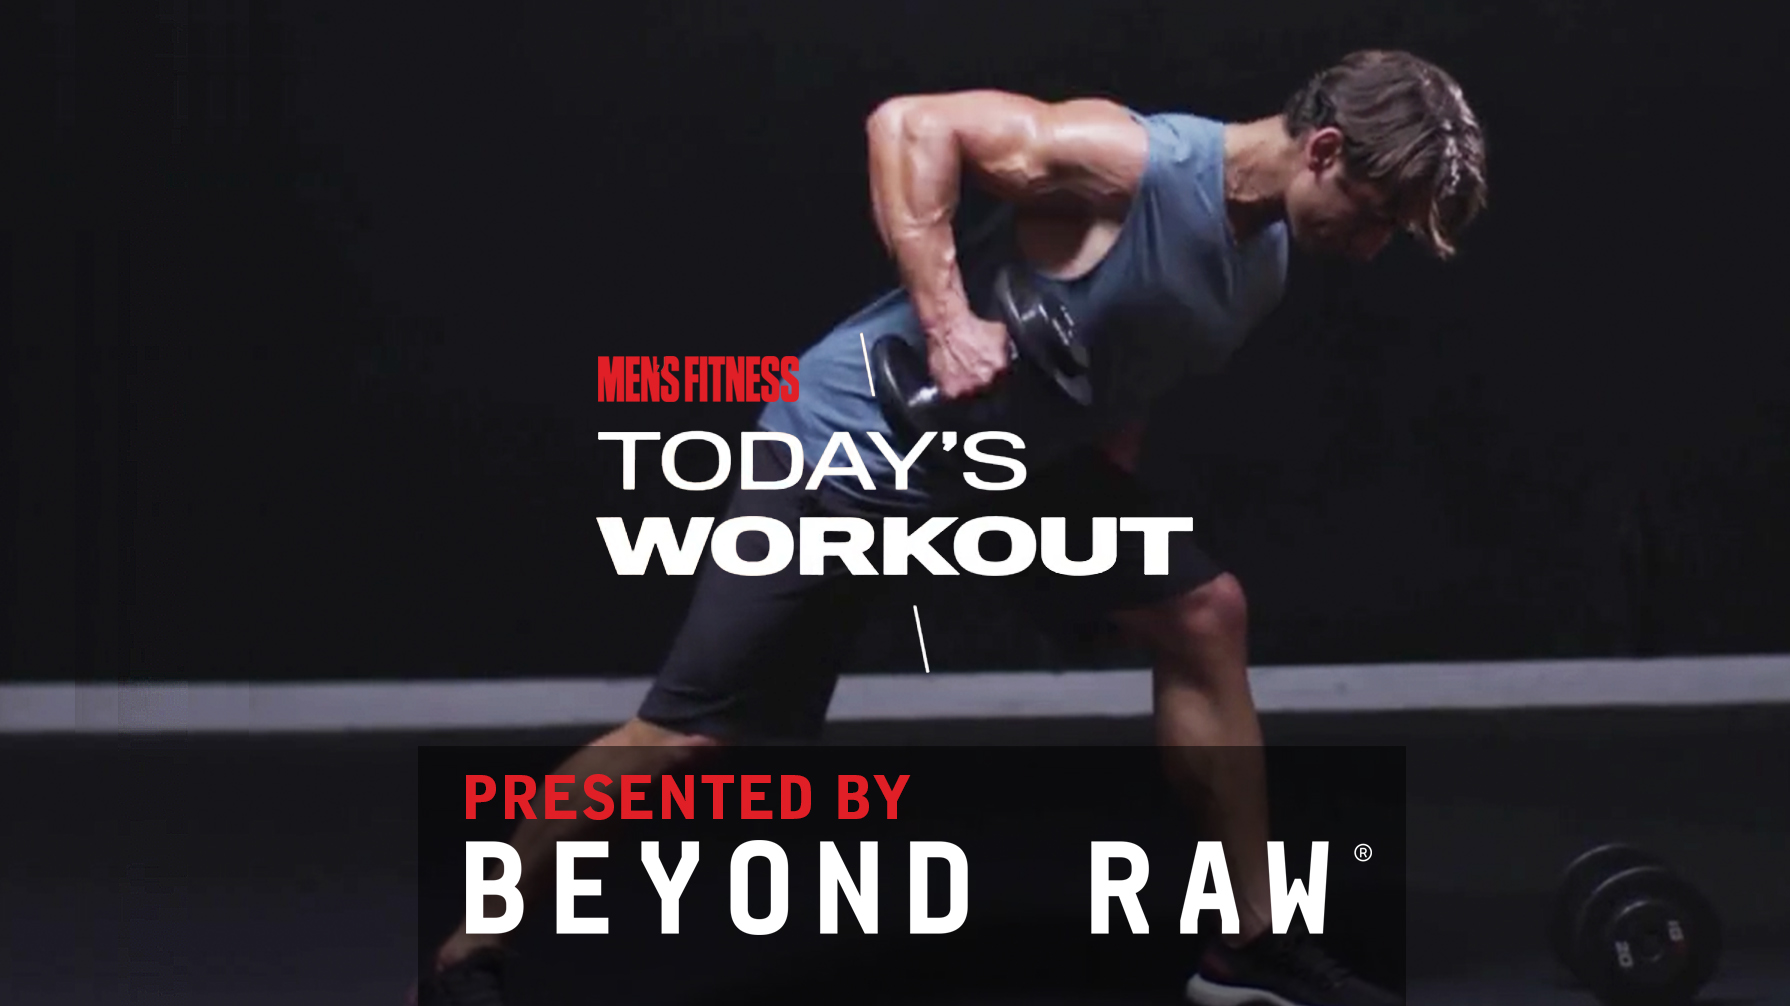 Today's Workout 35: The total-body circuit to develop muscle mass